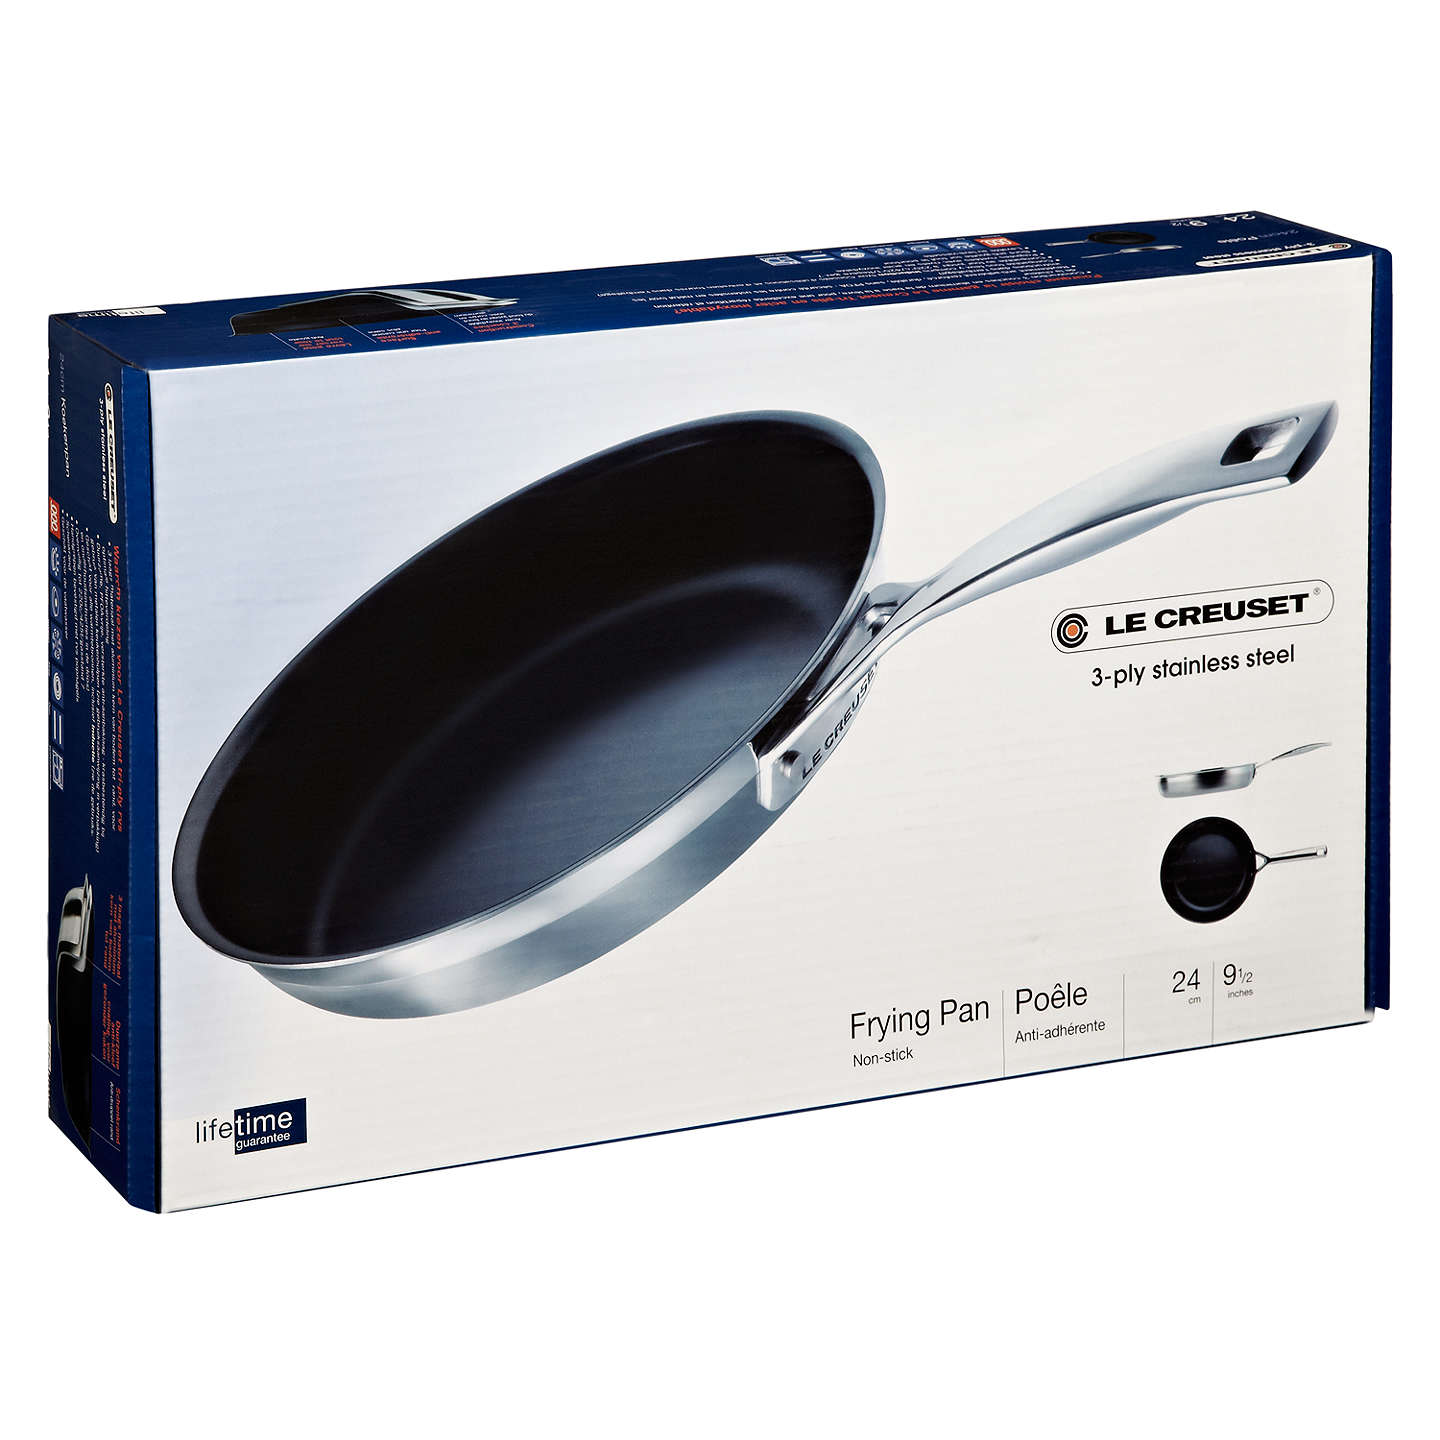 Le Creuset 3 Ply Stainless Steel 24cm Frying Pan At John Lewis